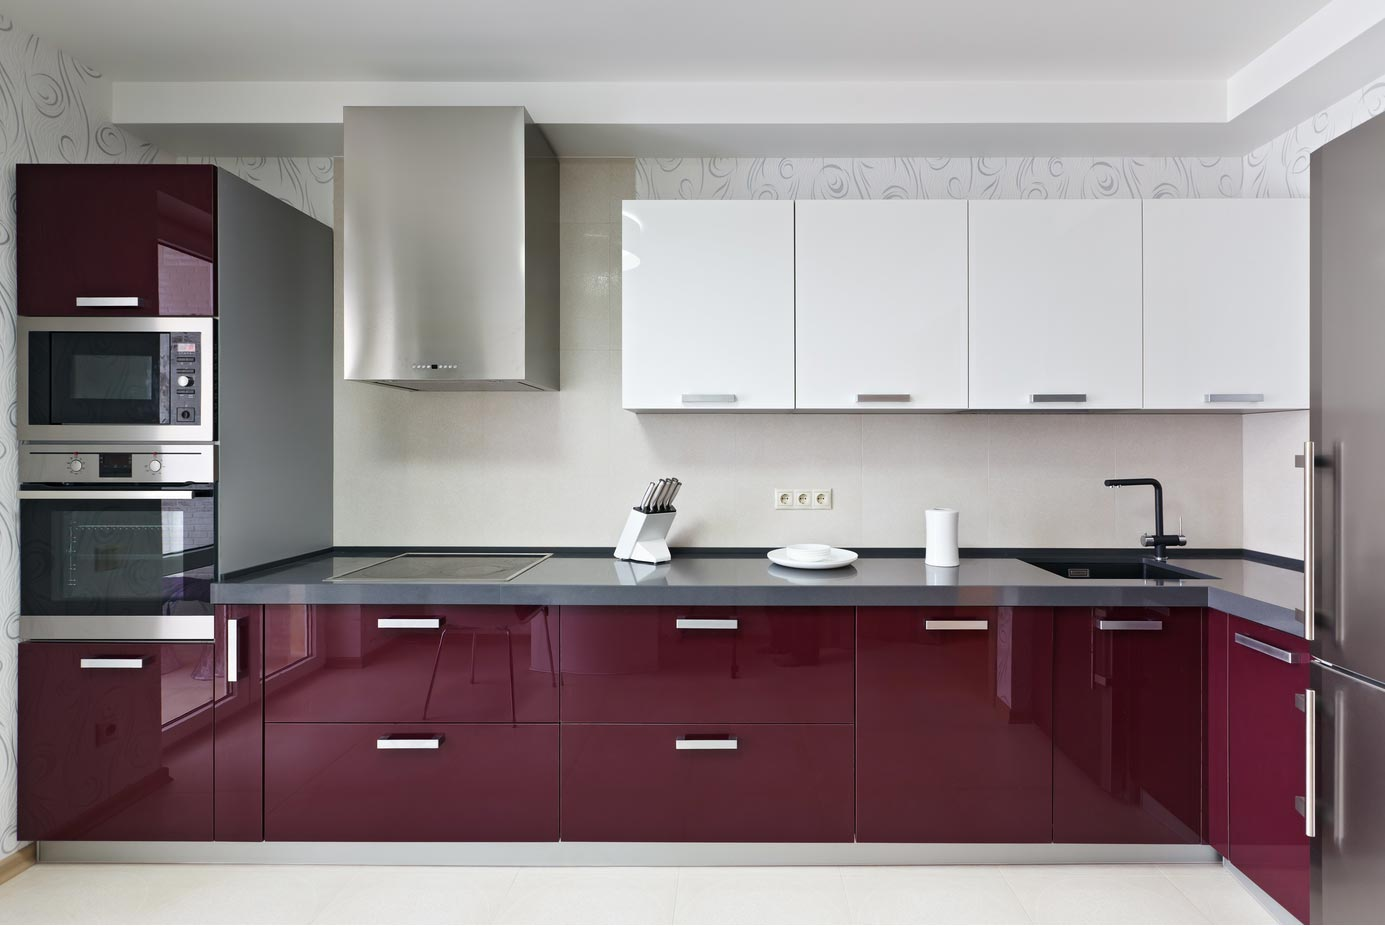 A modern kitchen with full overlay thermofoil kitchen cabinets.